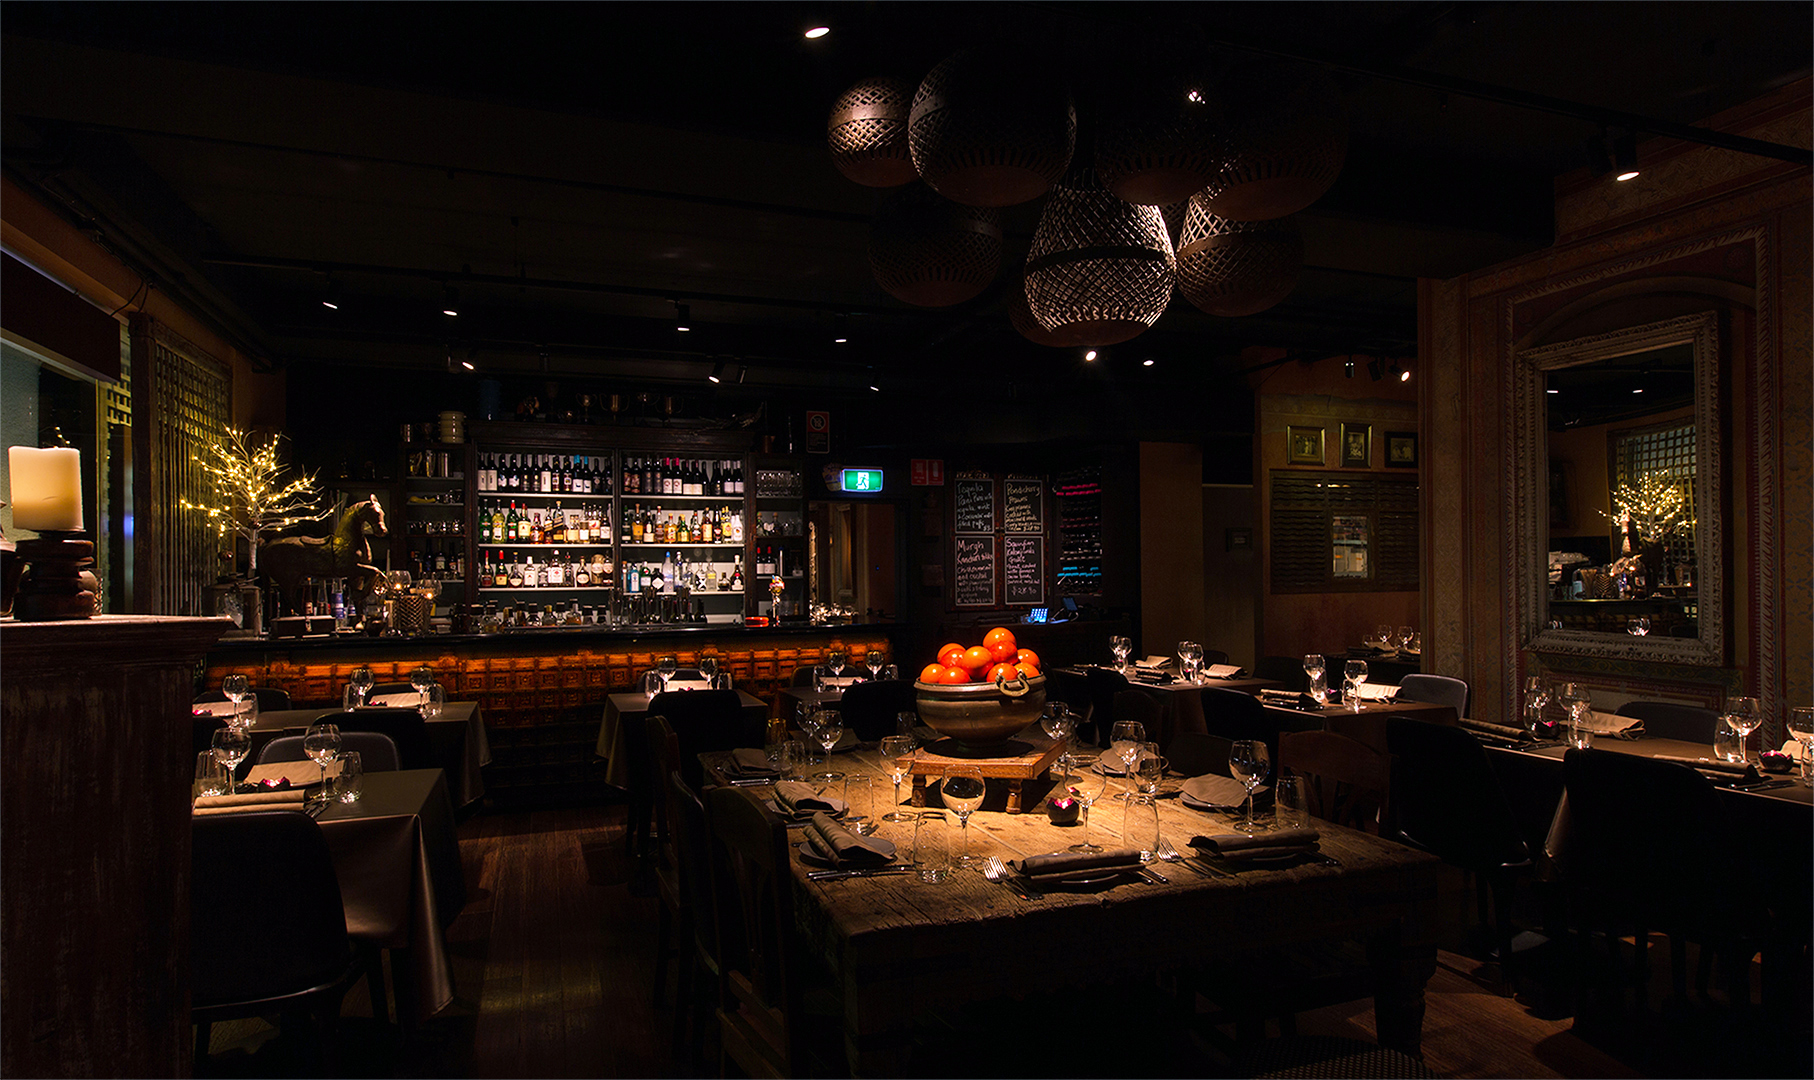 Soraa the world leader in GaN on GaNTM LED technology announced that its LED l&s have been installed at the iconic Spice Room restaurant in Sydney ... & SORAA